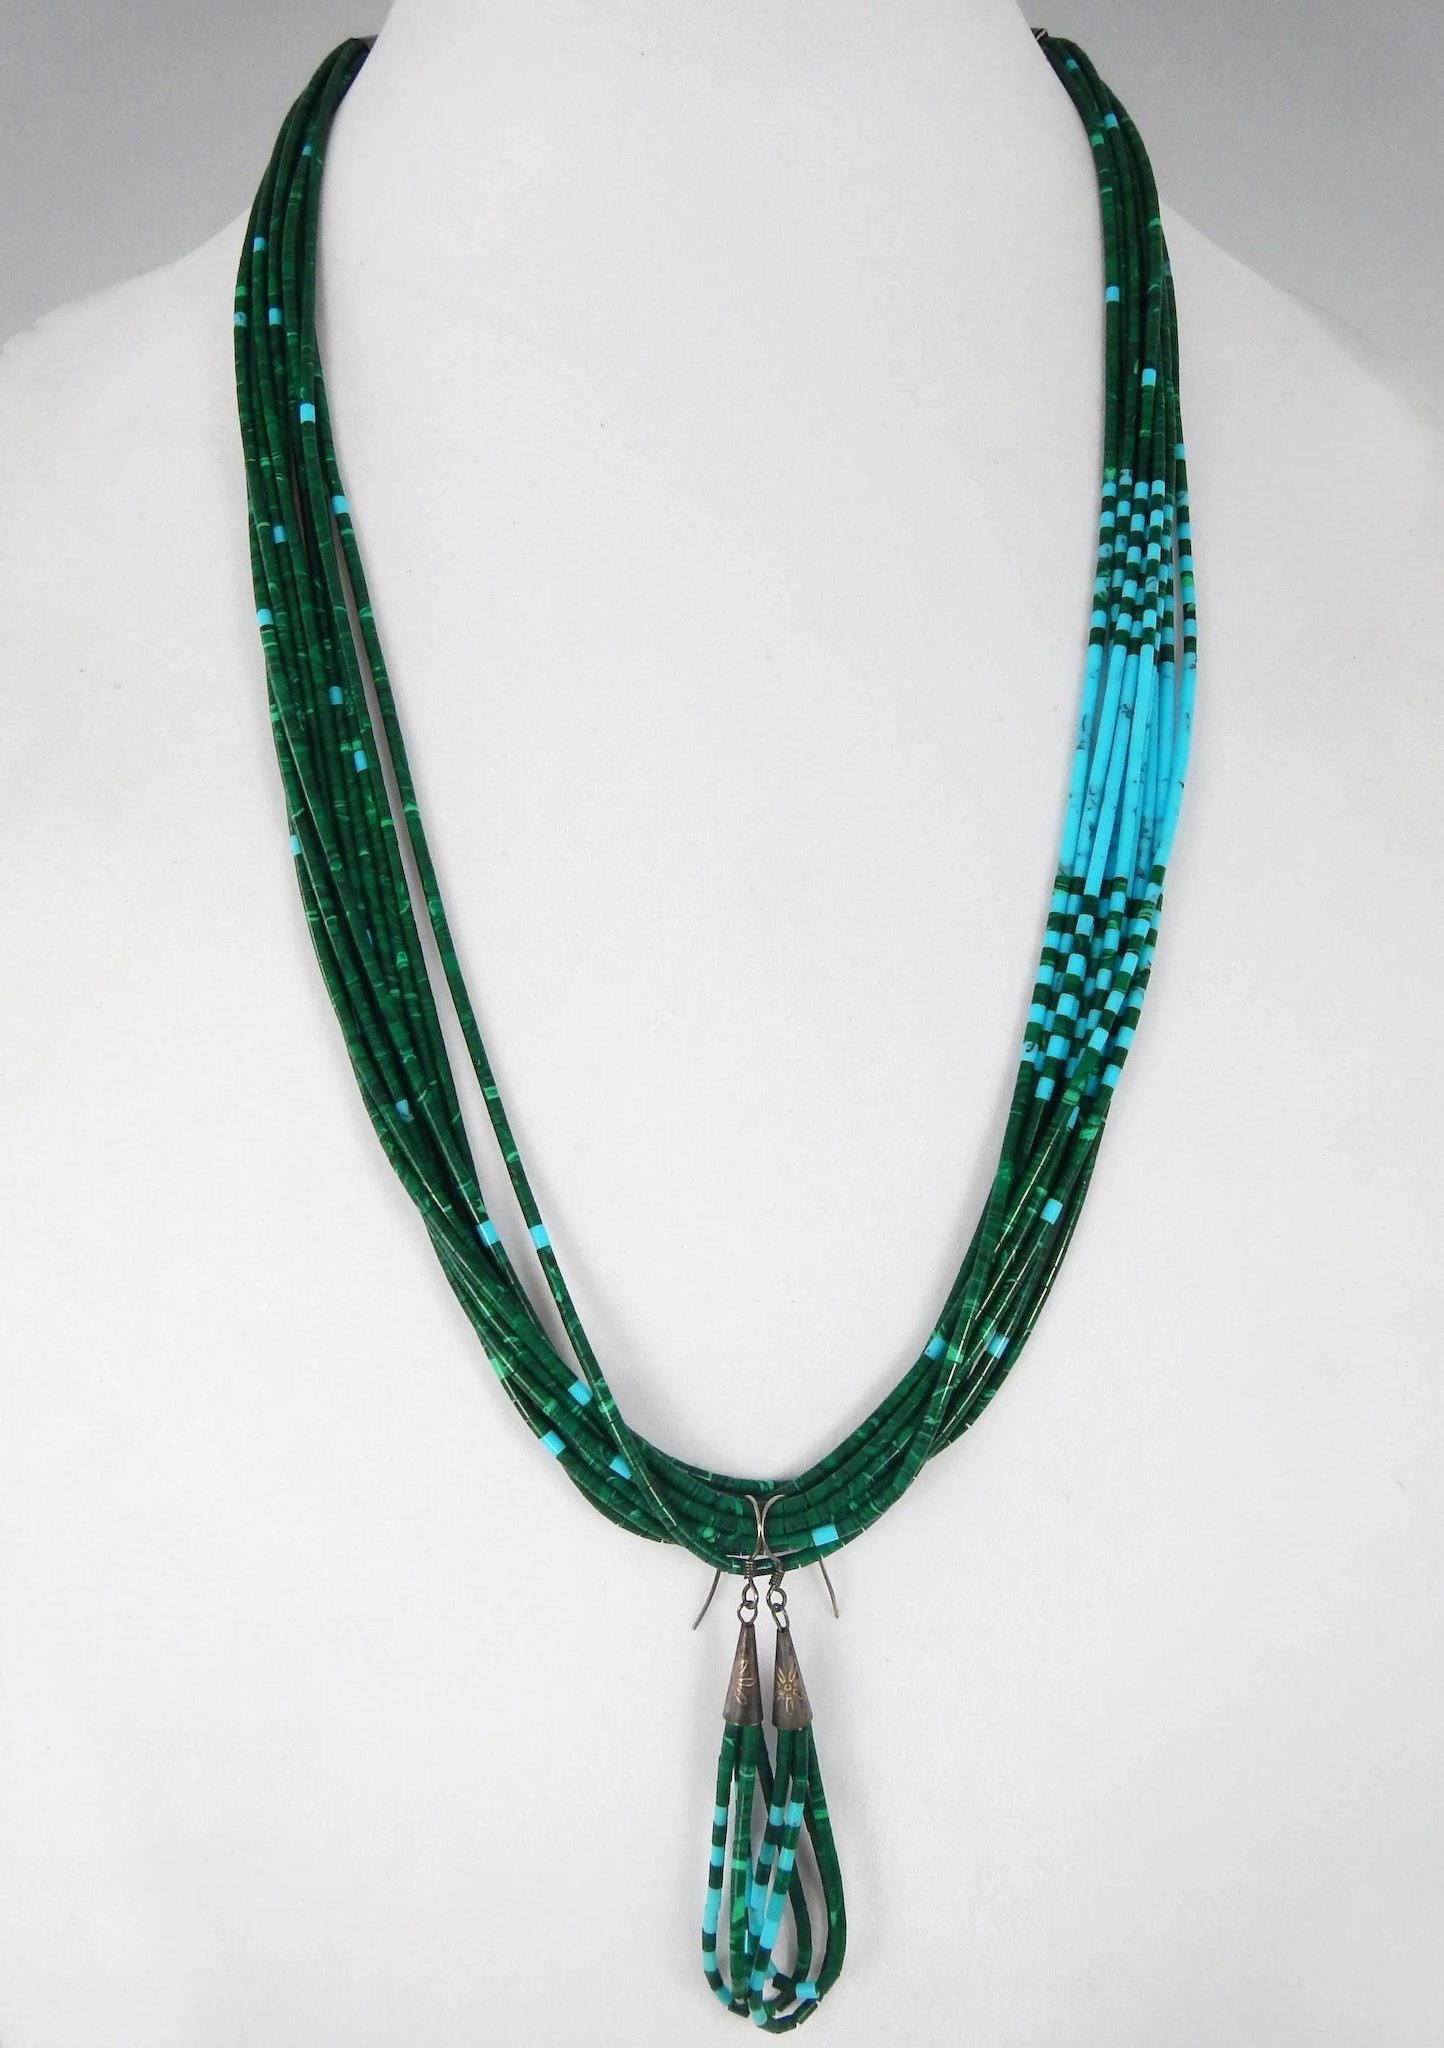 by turquoise and necklace village shell santo ramona domingo heishi olive products coral bird